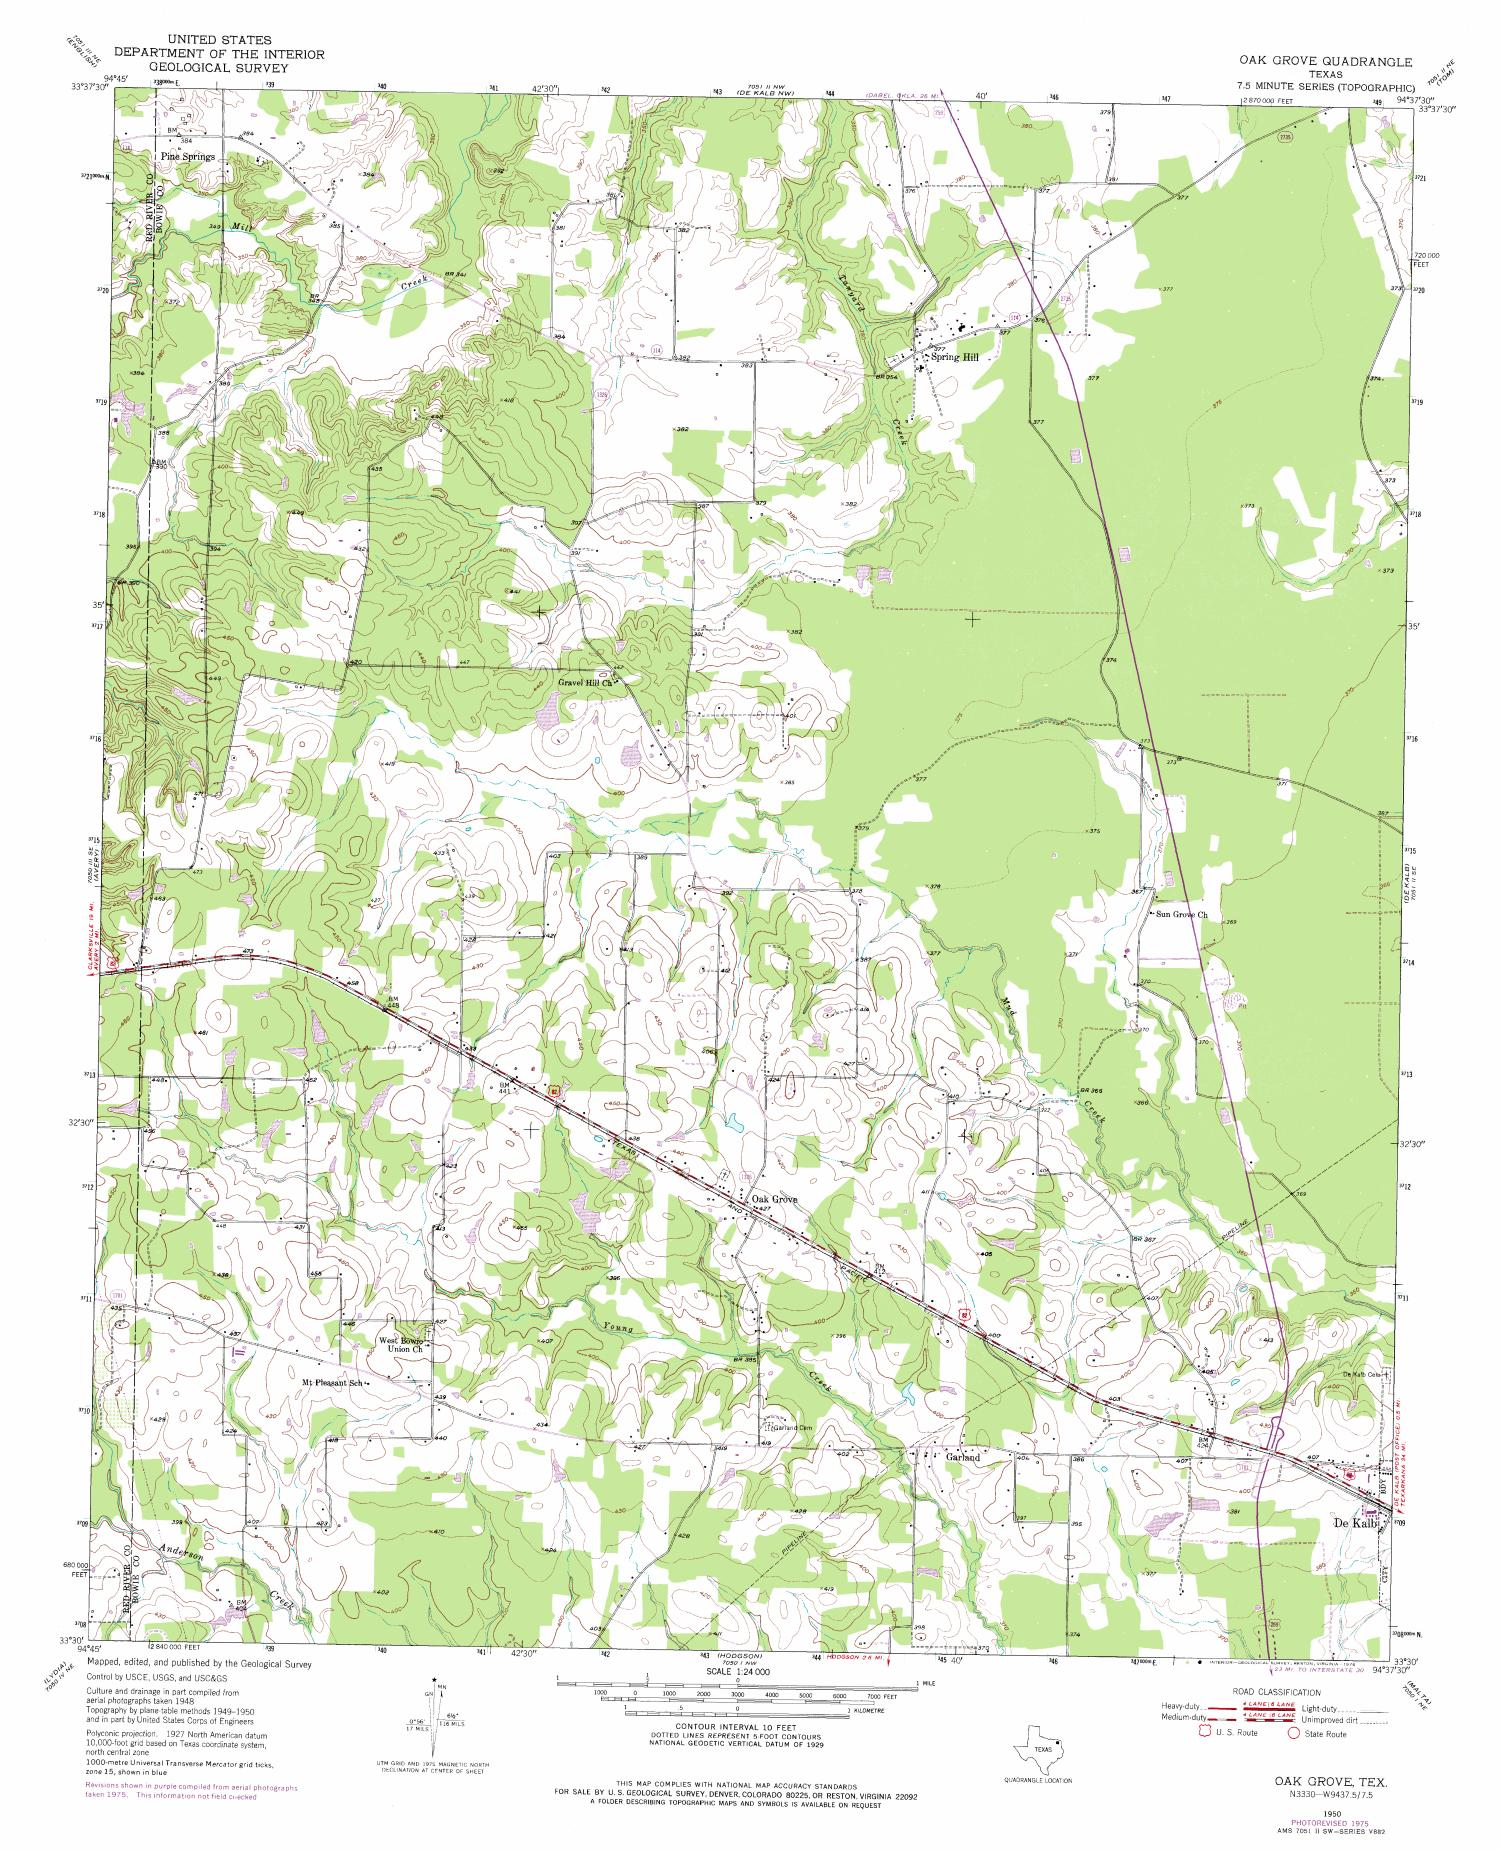 Oak Grove Quadrangle, Topographic map of a portion of Texas from the United States Geological Survey (USGS) project. The map includes towns, historic or notable sites, bodies of water, and other geologic features. Scale 1:24,000,